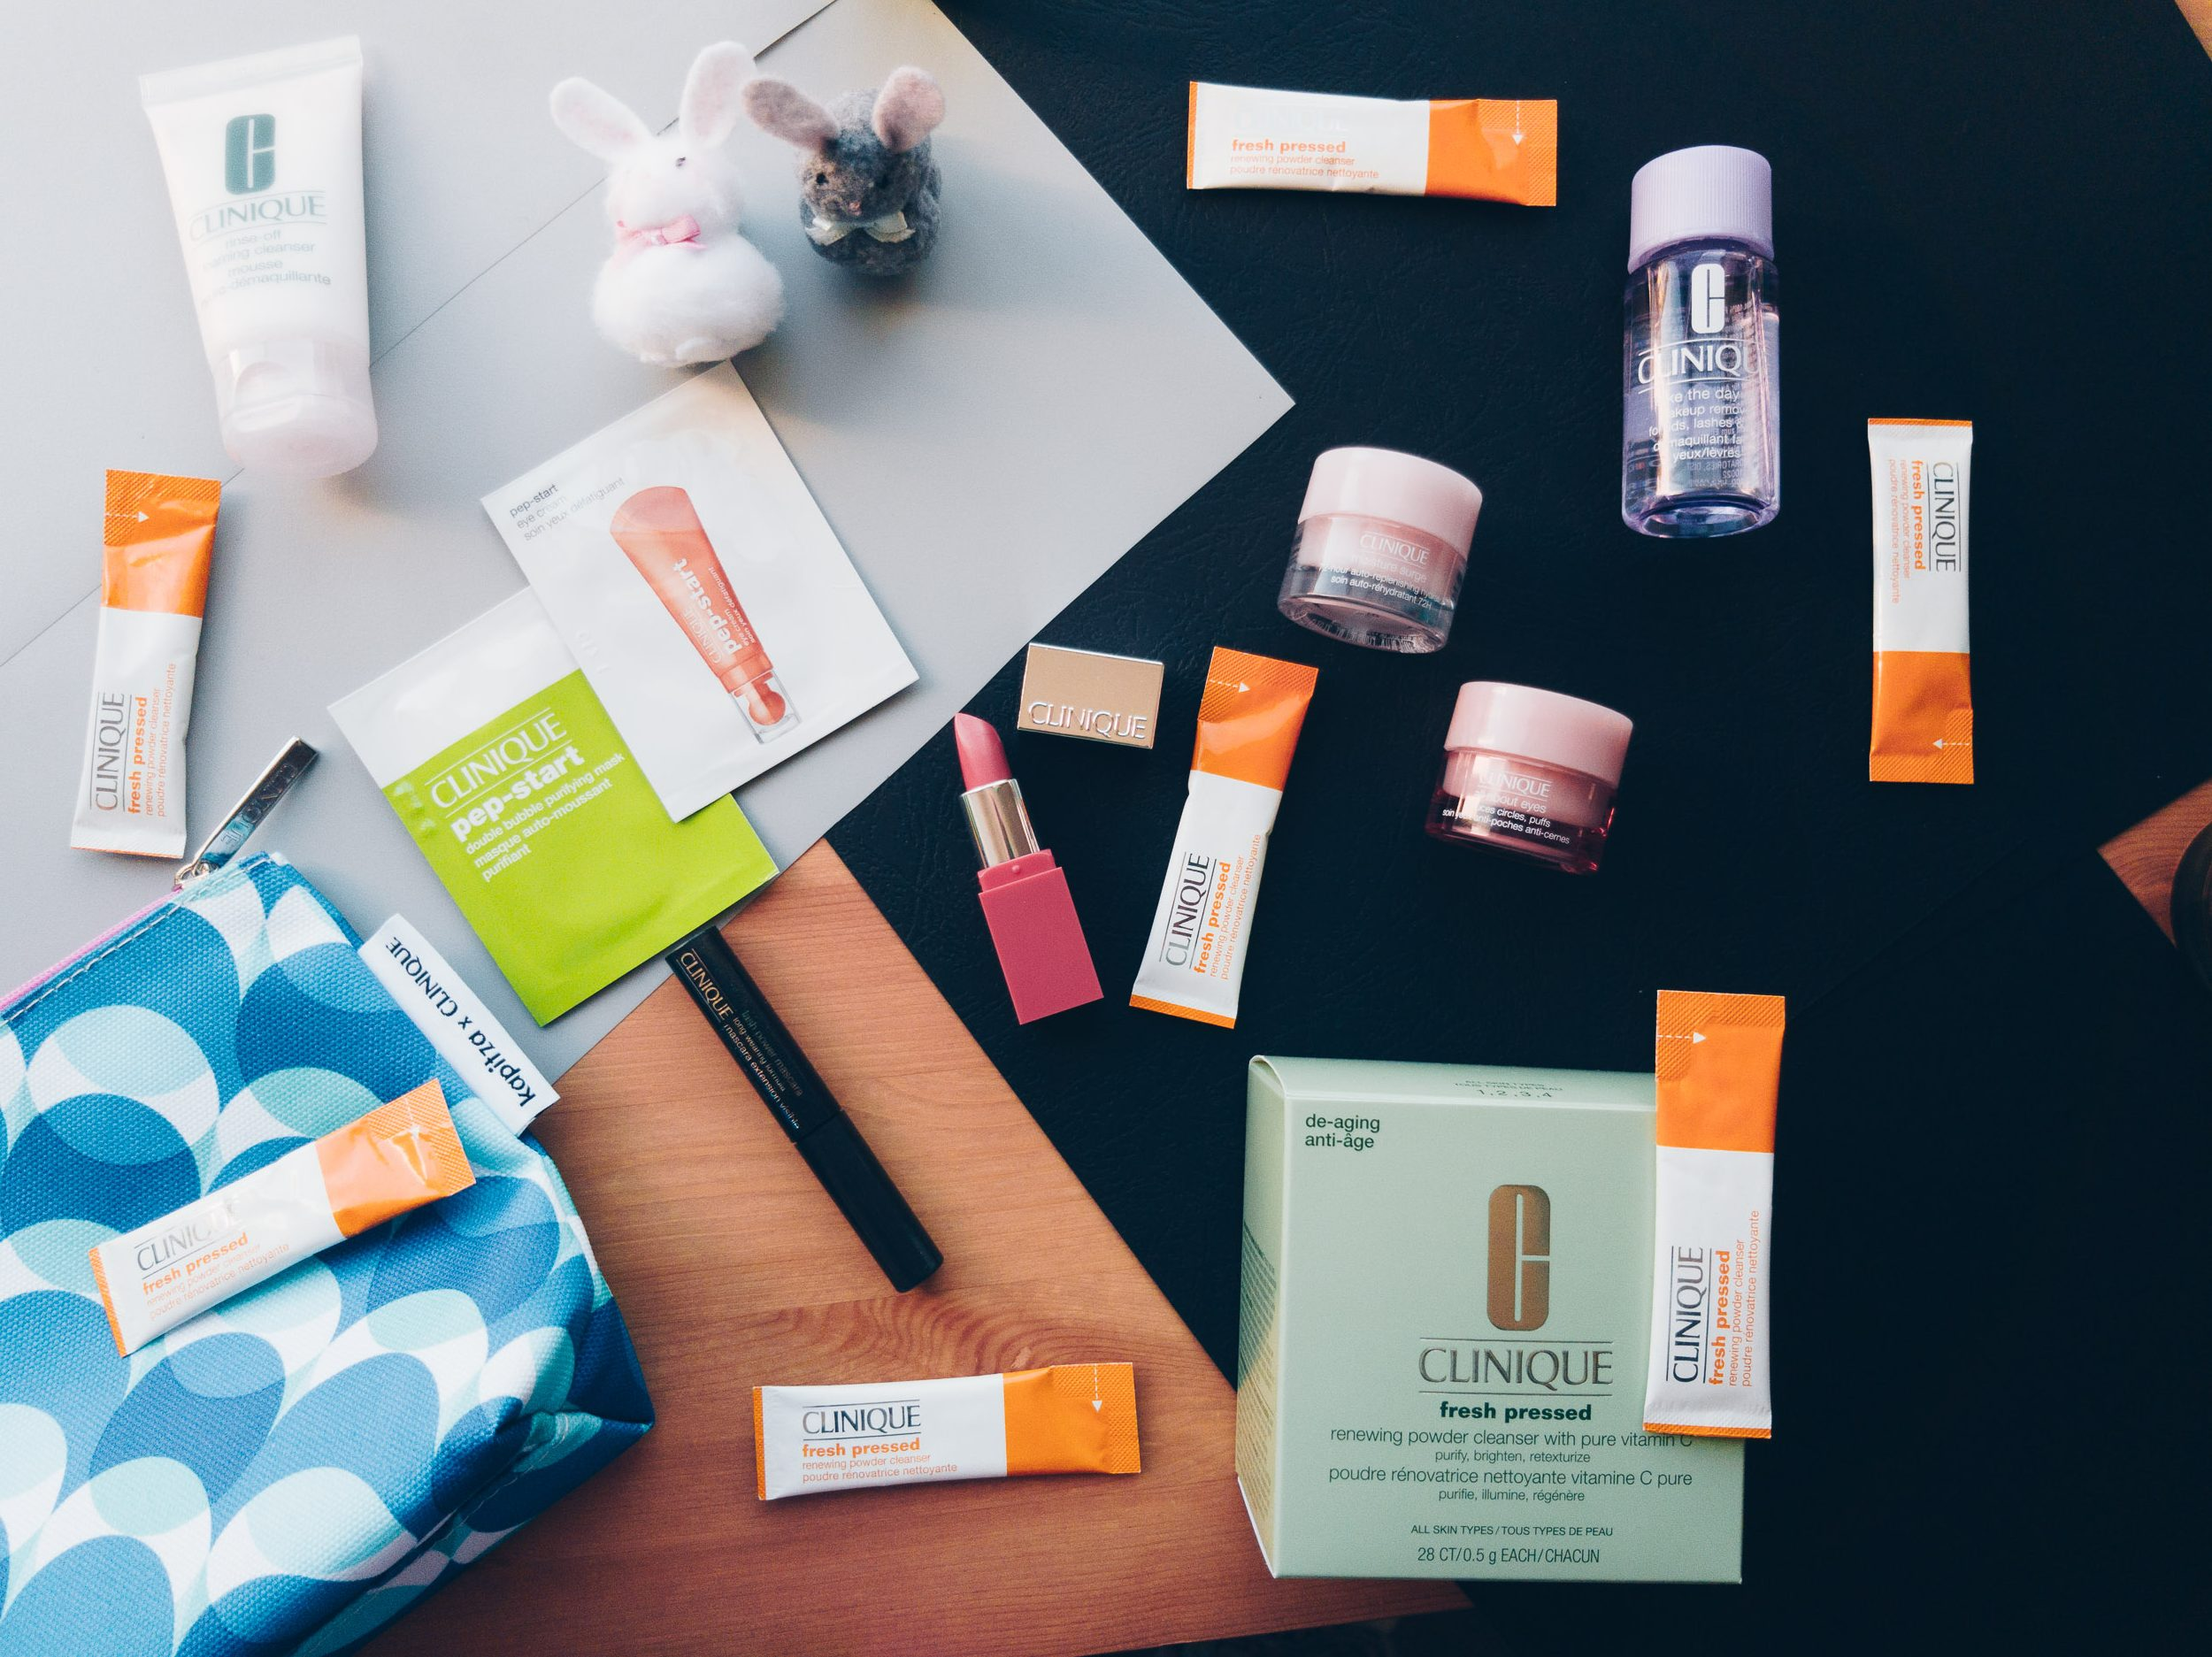 Clinique Fresh Pressed™ Renewing Powder Cleanser with Pure Vitamin C review with flatlay of sachets of the product and other clinique beauty products in orange and white